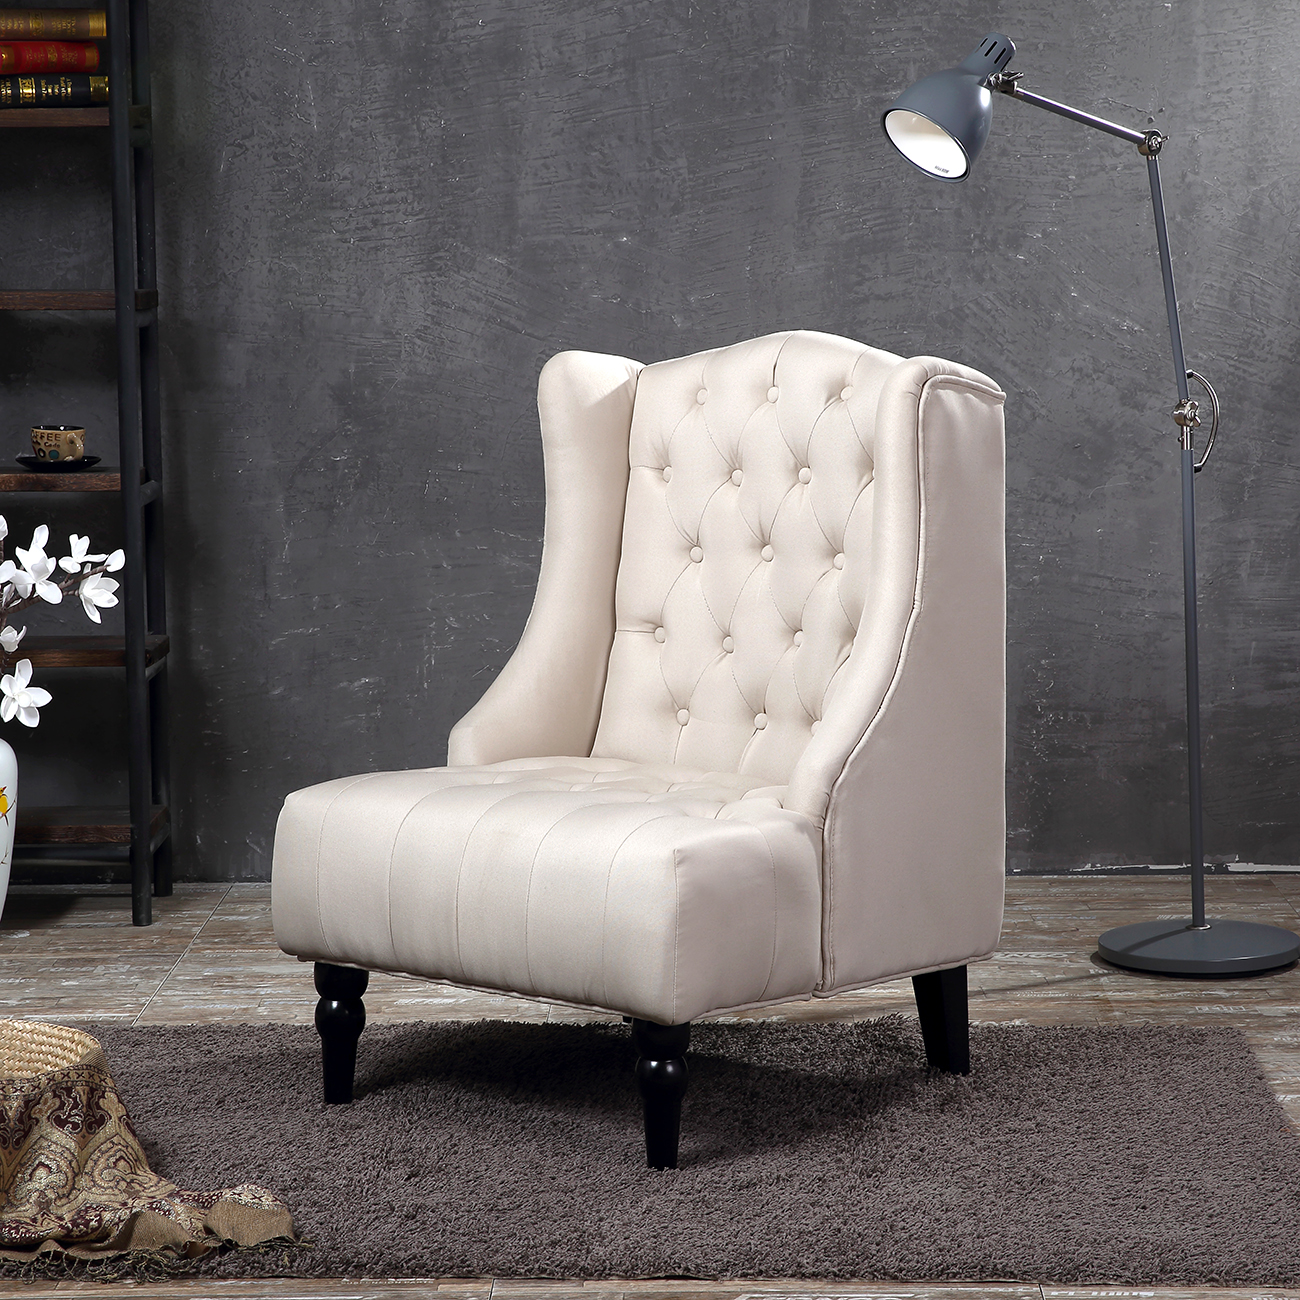 Light pink accent chair 187 home design 2017 - Wingback Accent Chair Tall High Back Living Room Tufted Nailhead Gray Beige